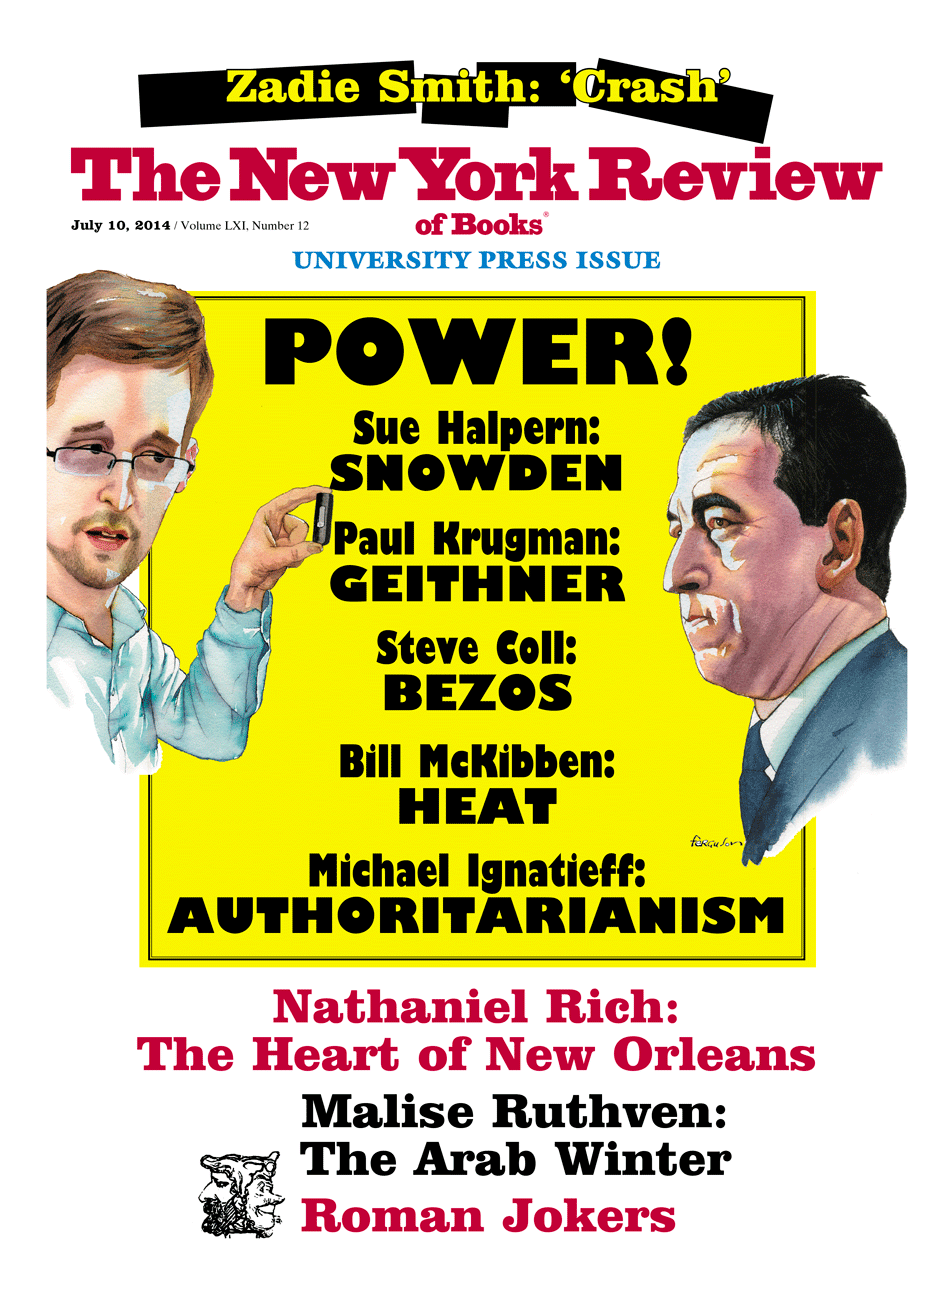 Image of the July 10, 2014 issue cover.